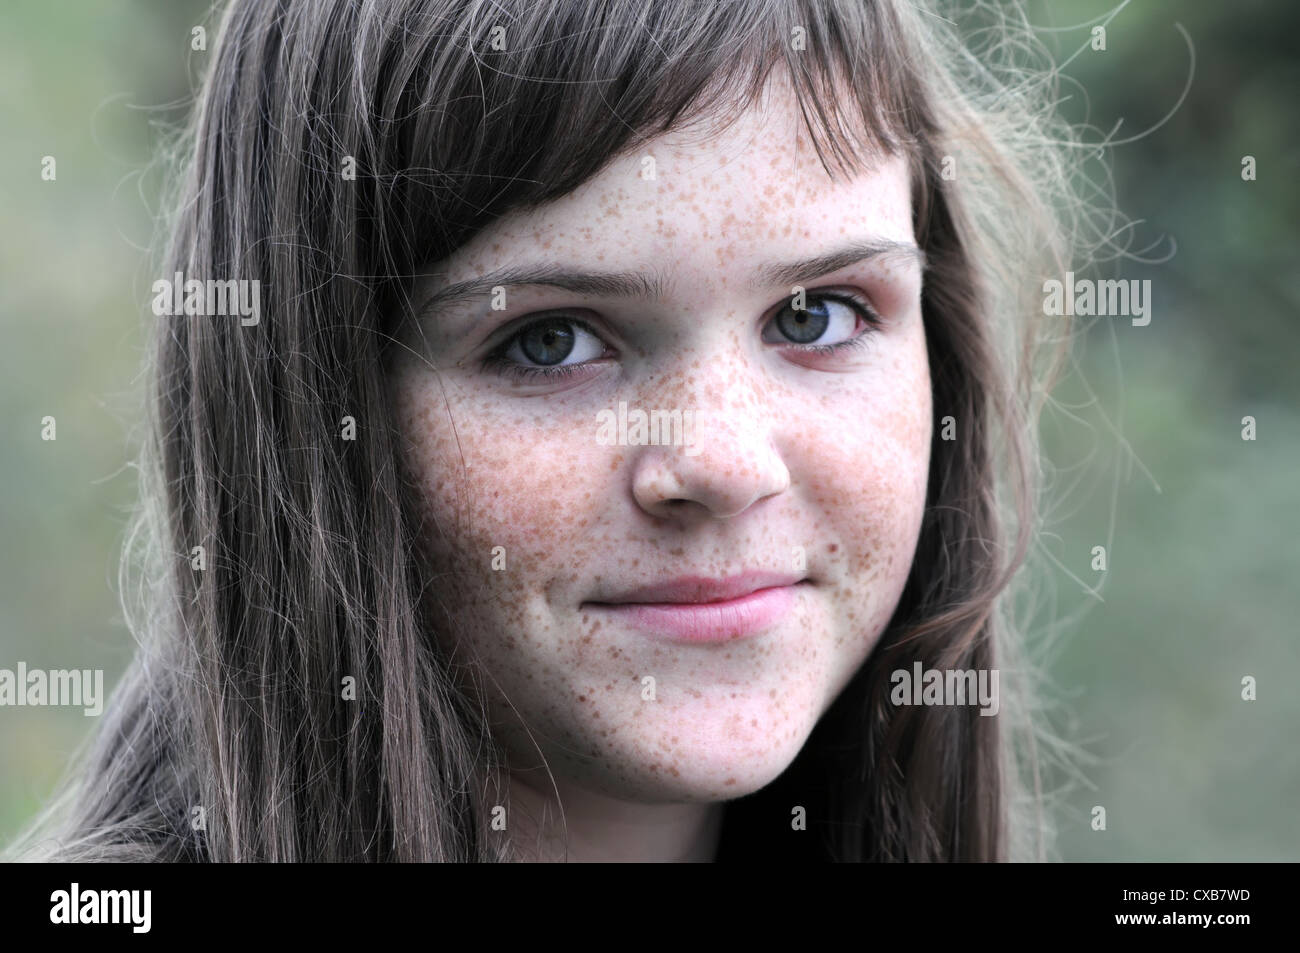 outdoors portrait of freckled teenage girl - Stock Image